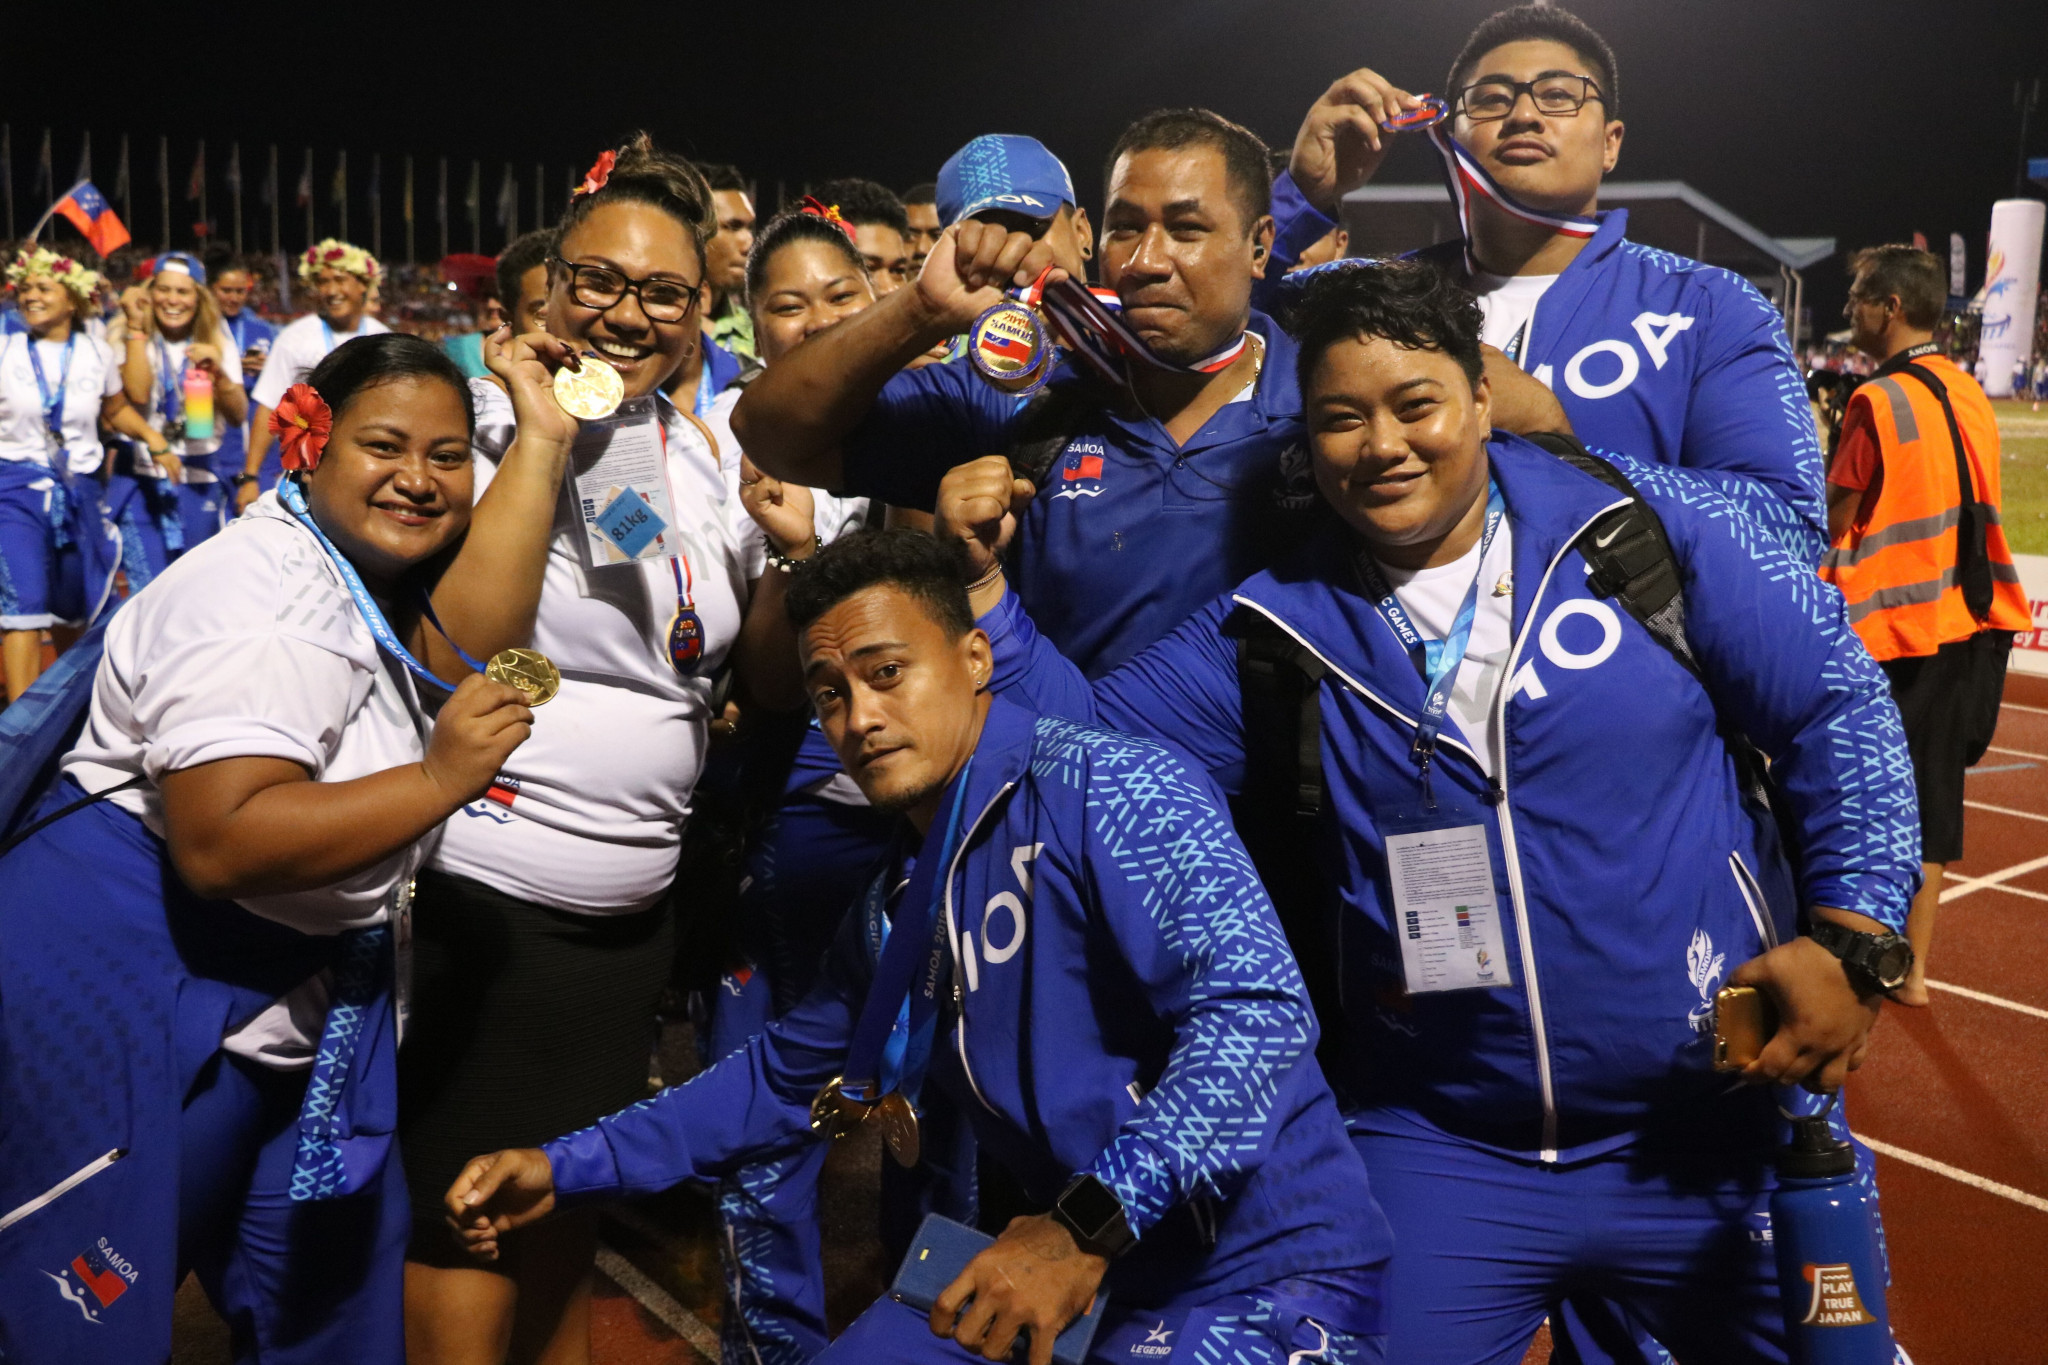 insidethegames is reporting LIVE from the 2019 Pacific Games in Samoa